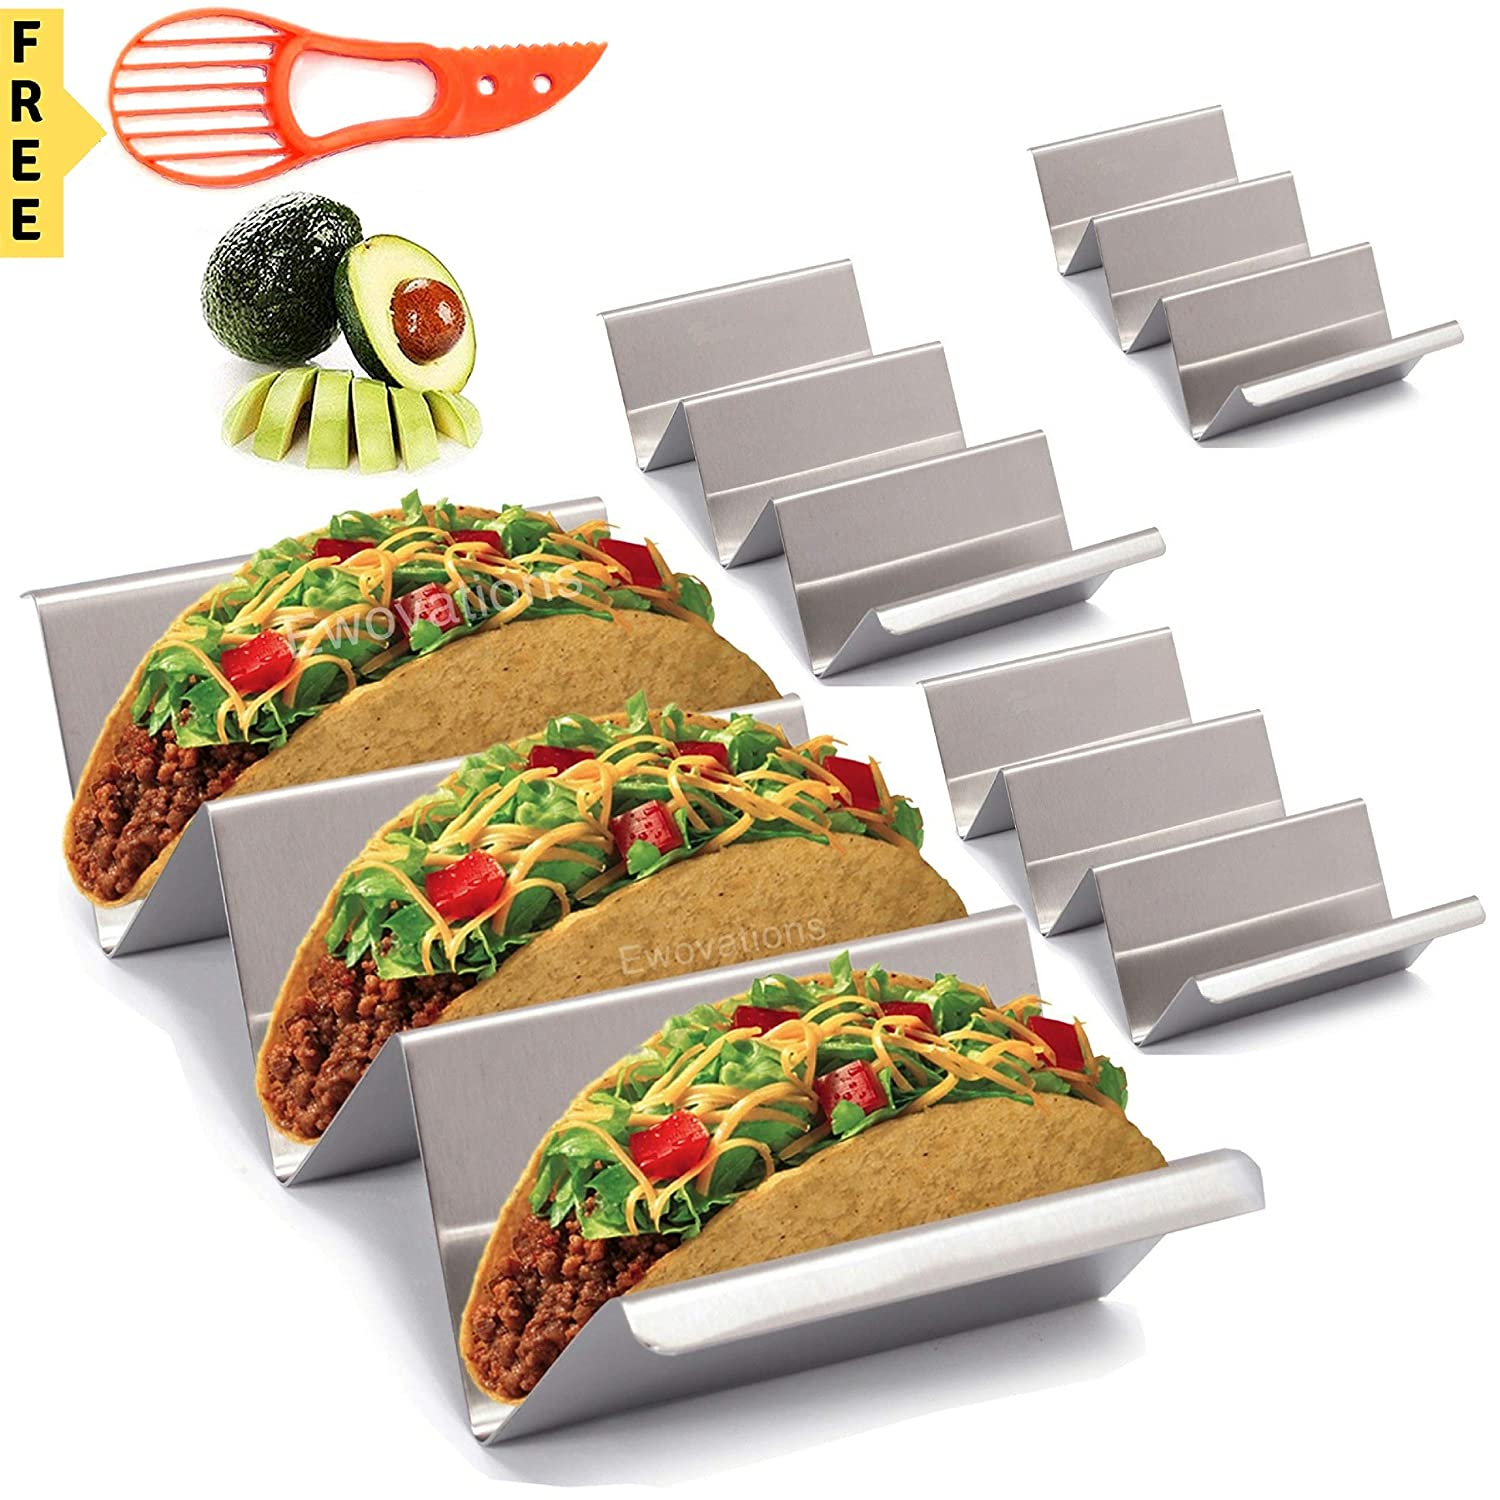 Taco Holder. 4 Pack Stainless Steel Taco Tray Stand with Handle. Taco Rack that is Safe for Oven Baking, Grill and Dishwasher. Taco Trays by Ewovations